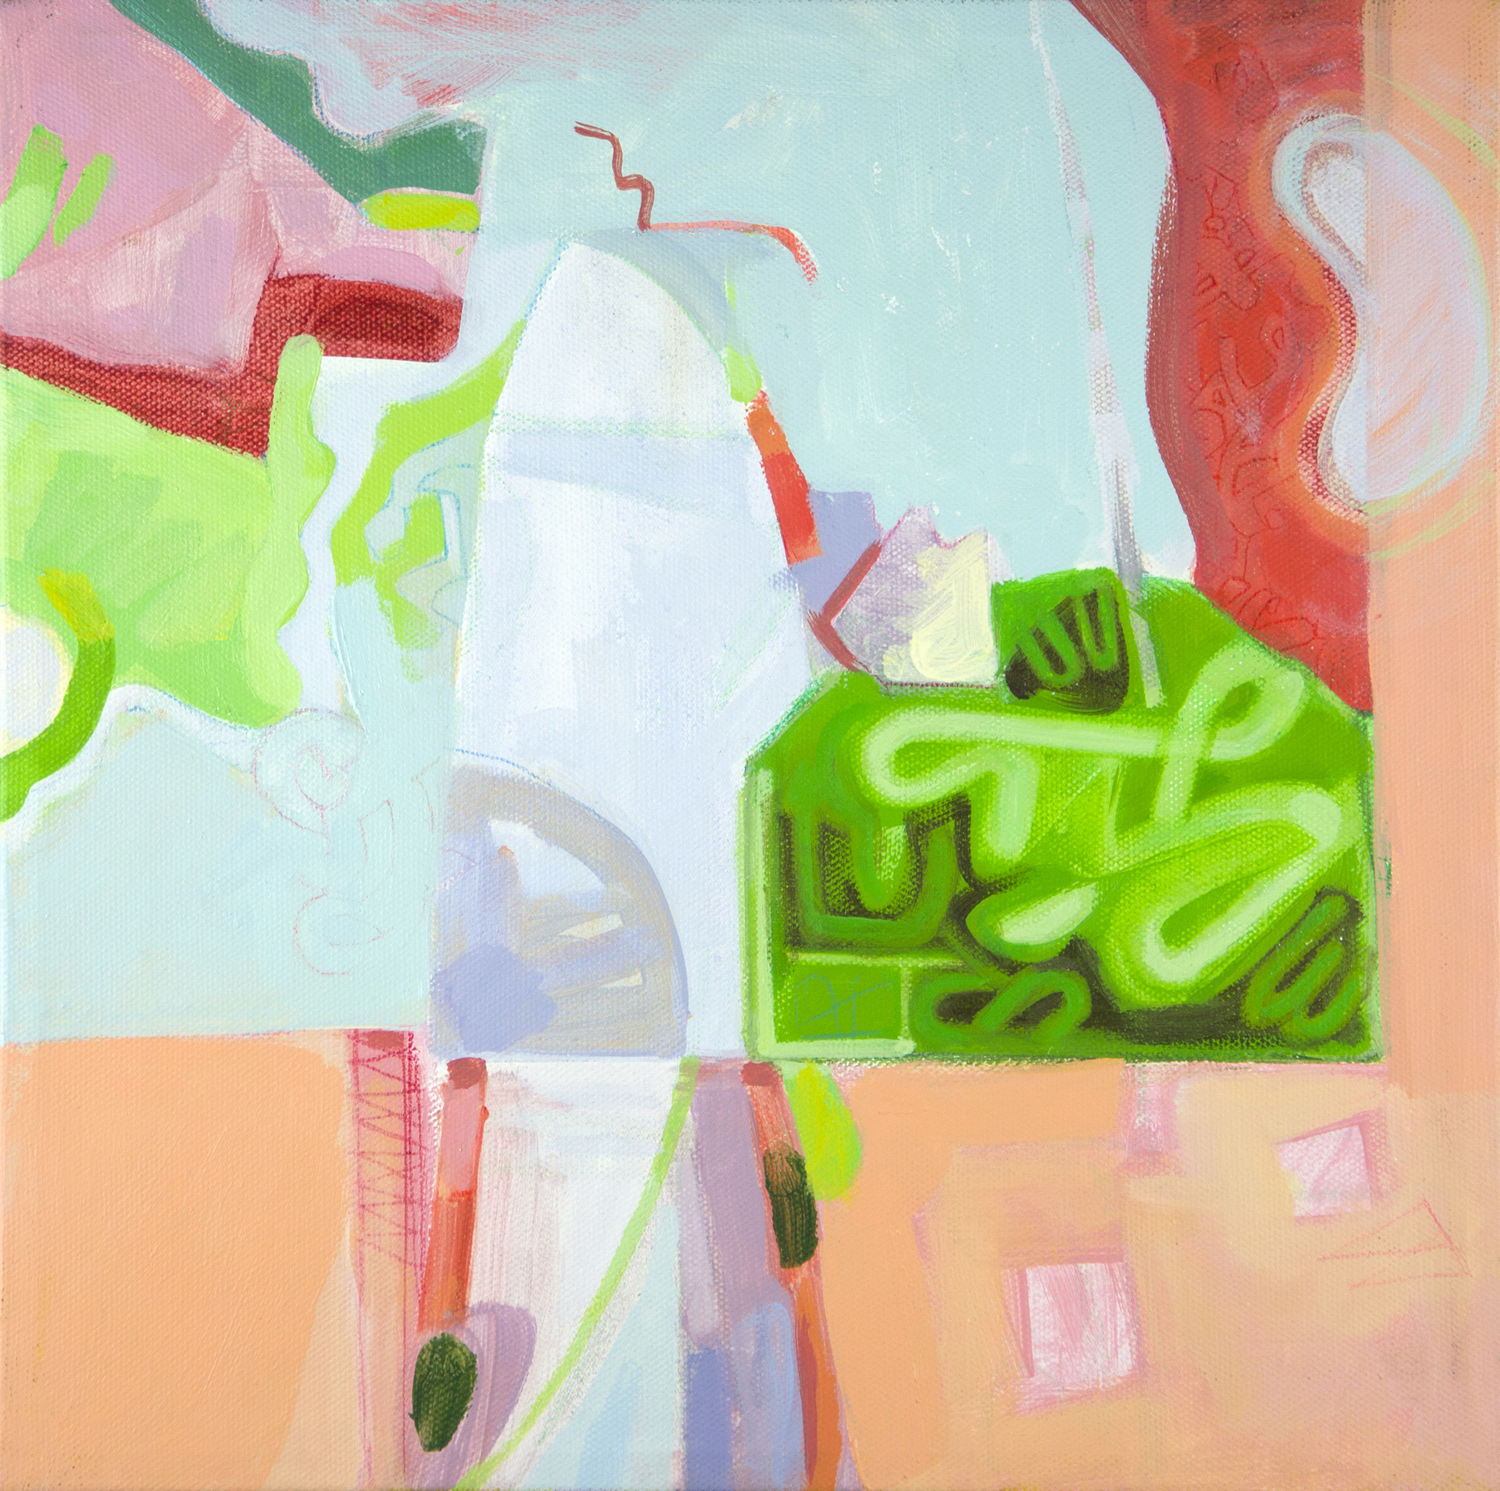 painting of abstract subject, light blues, pinks, oranges, greens